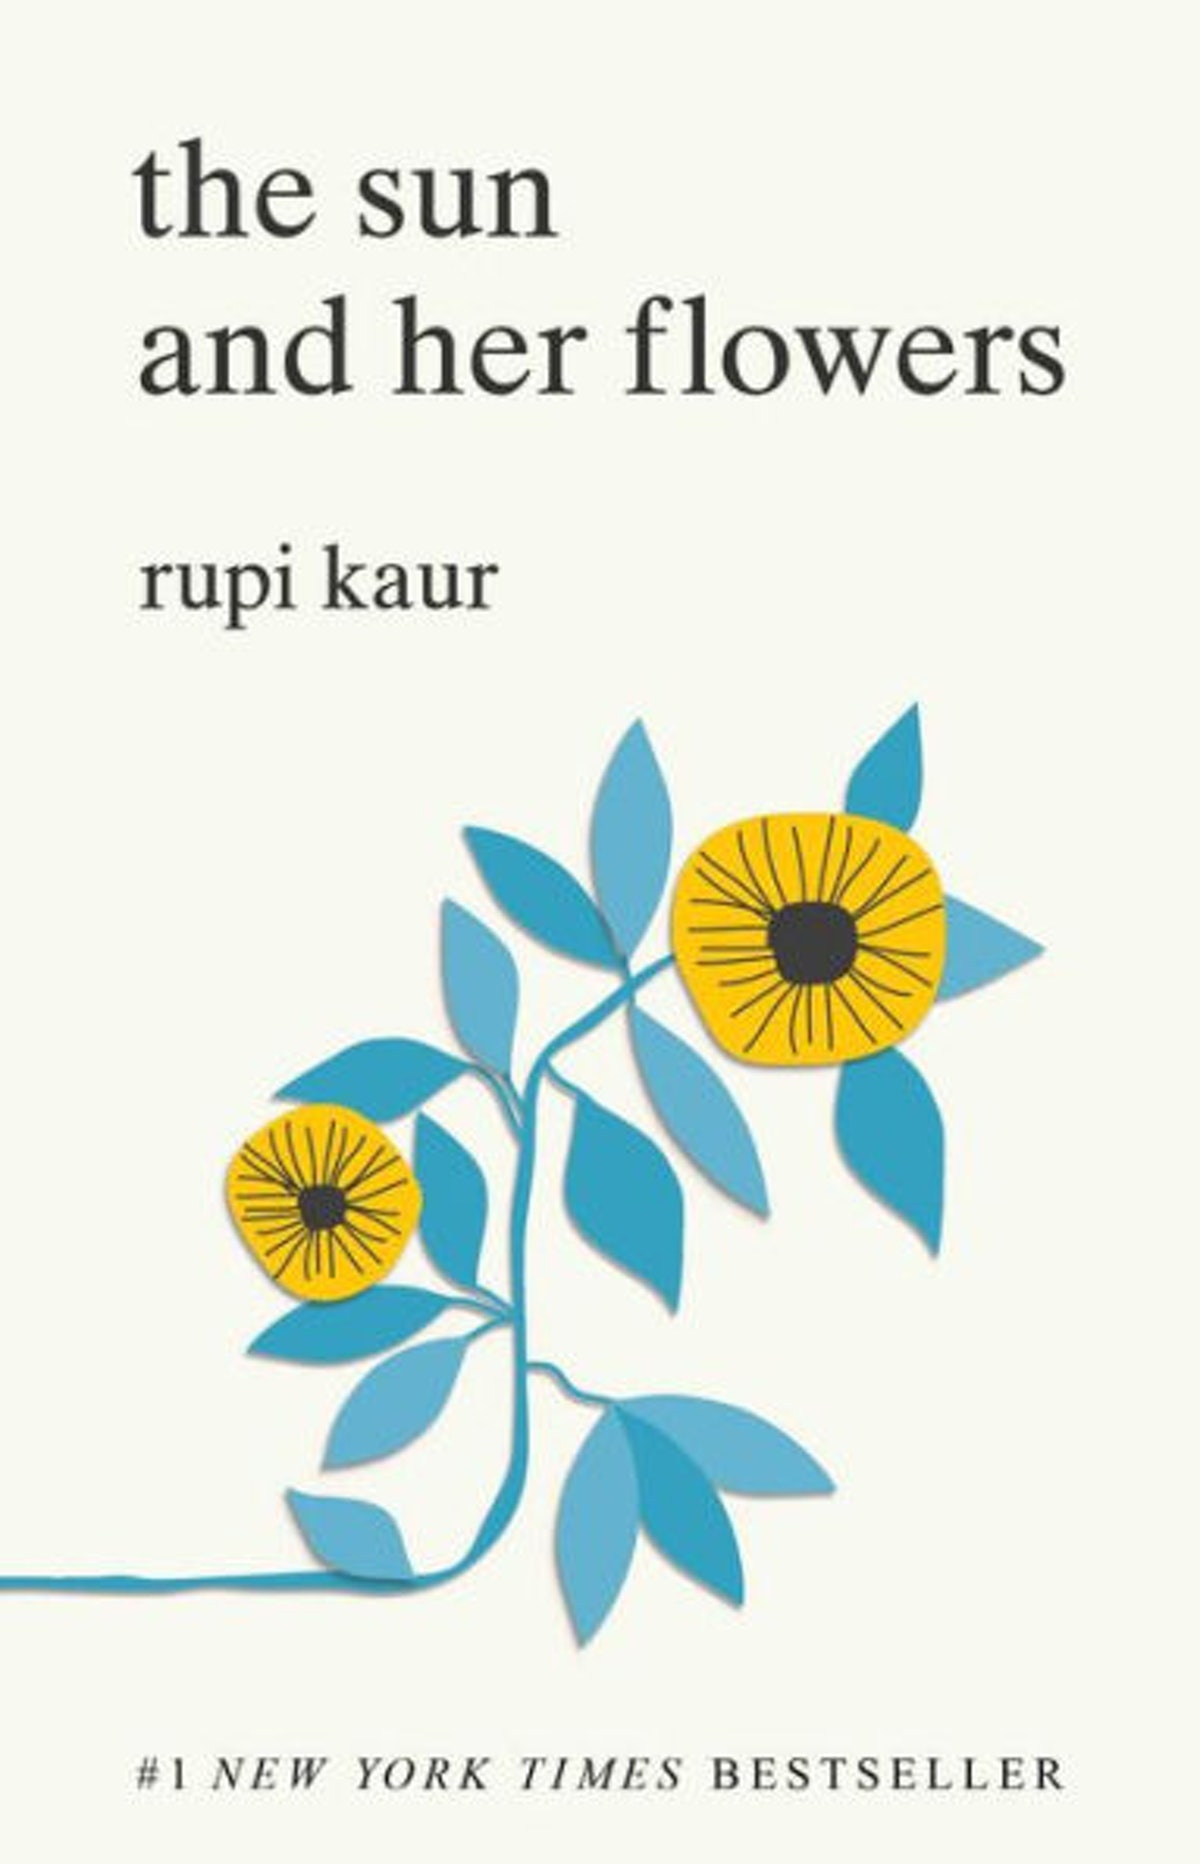 'The Sun and Her Flowers' by Rupi Kaur